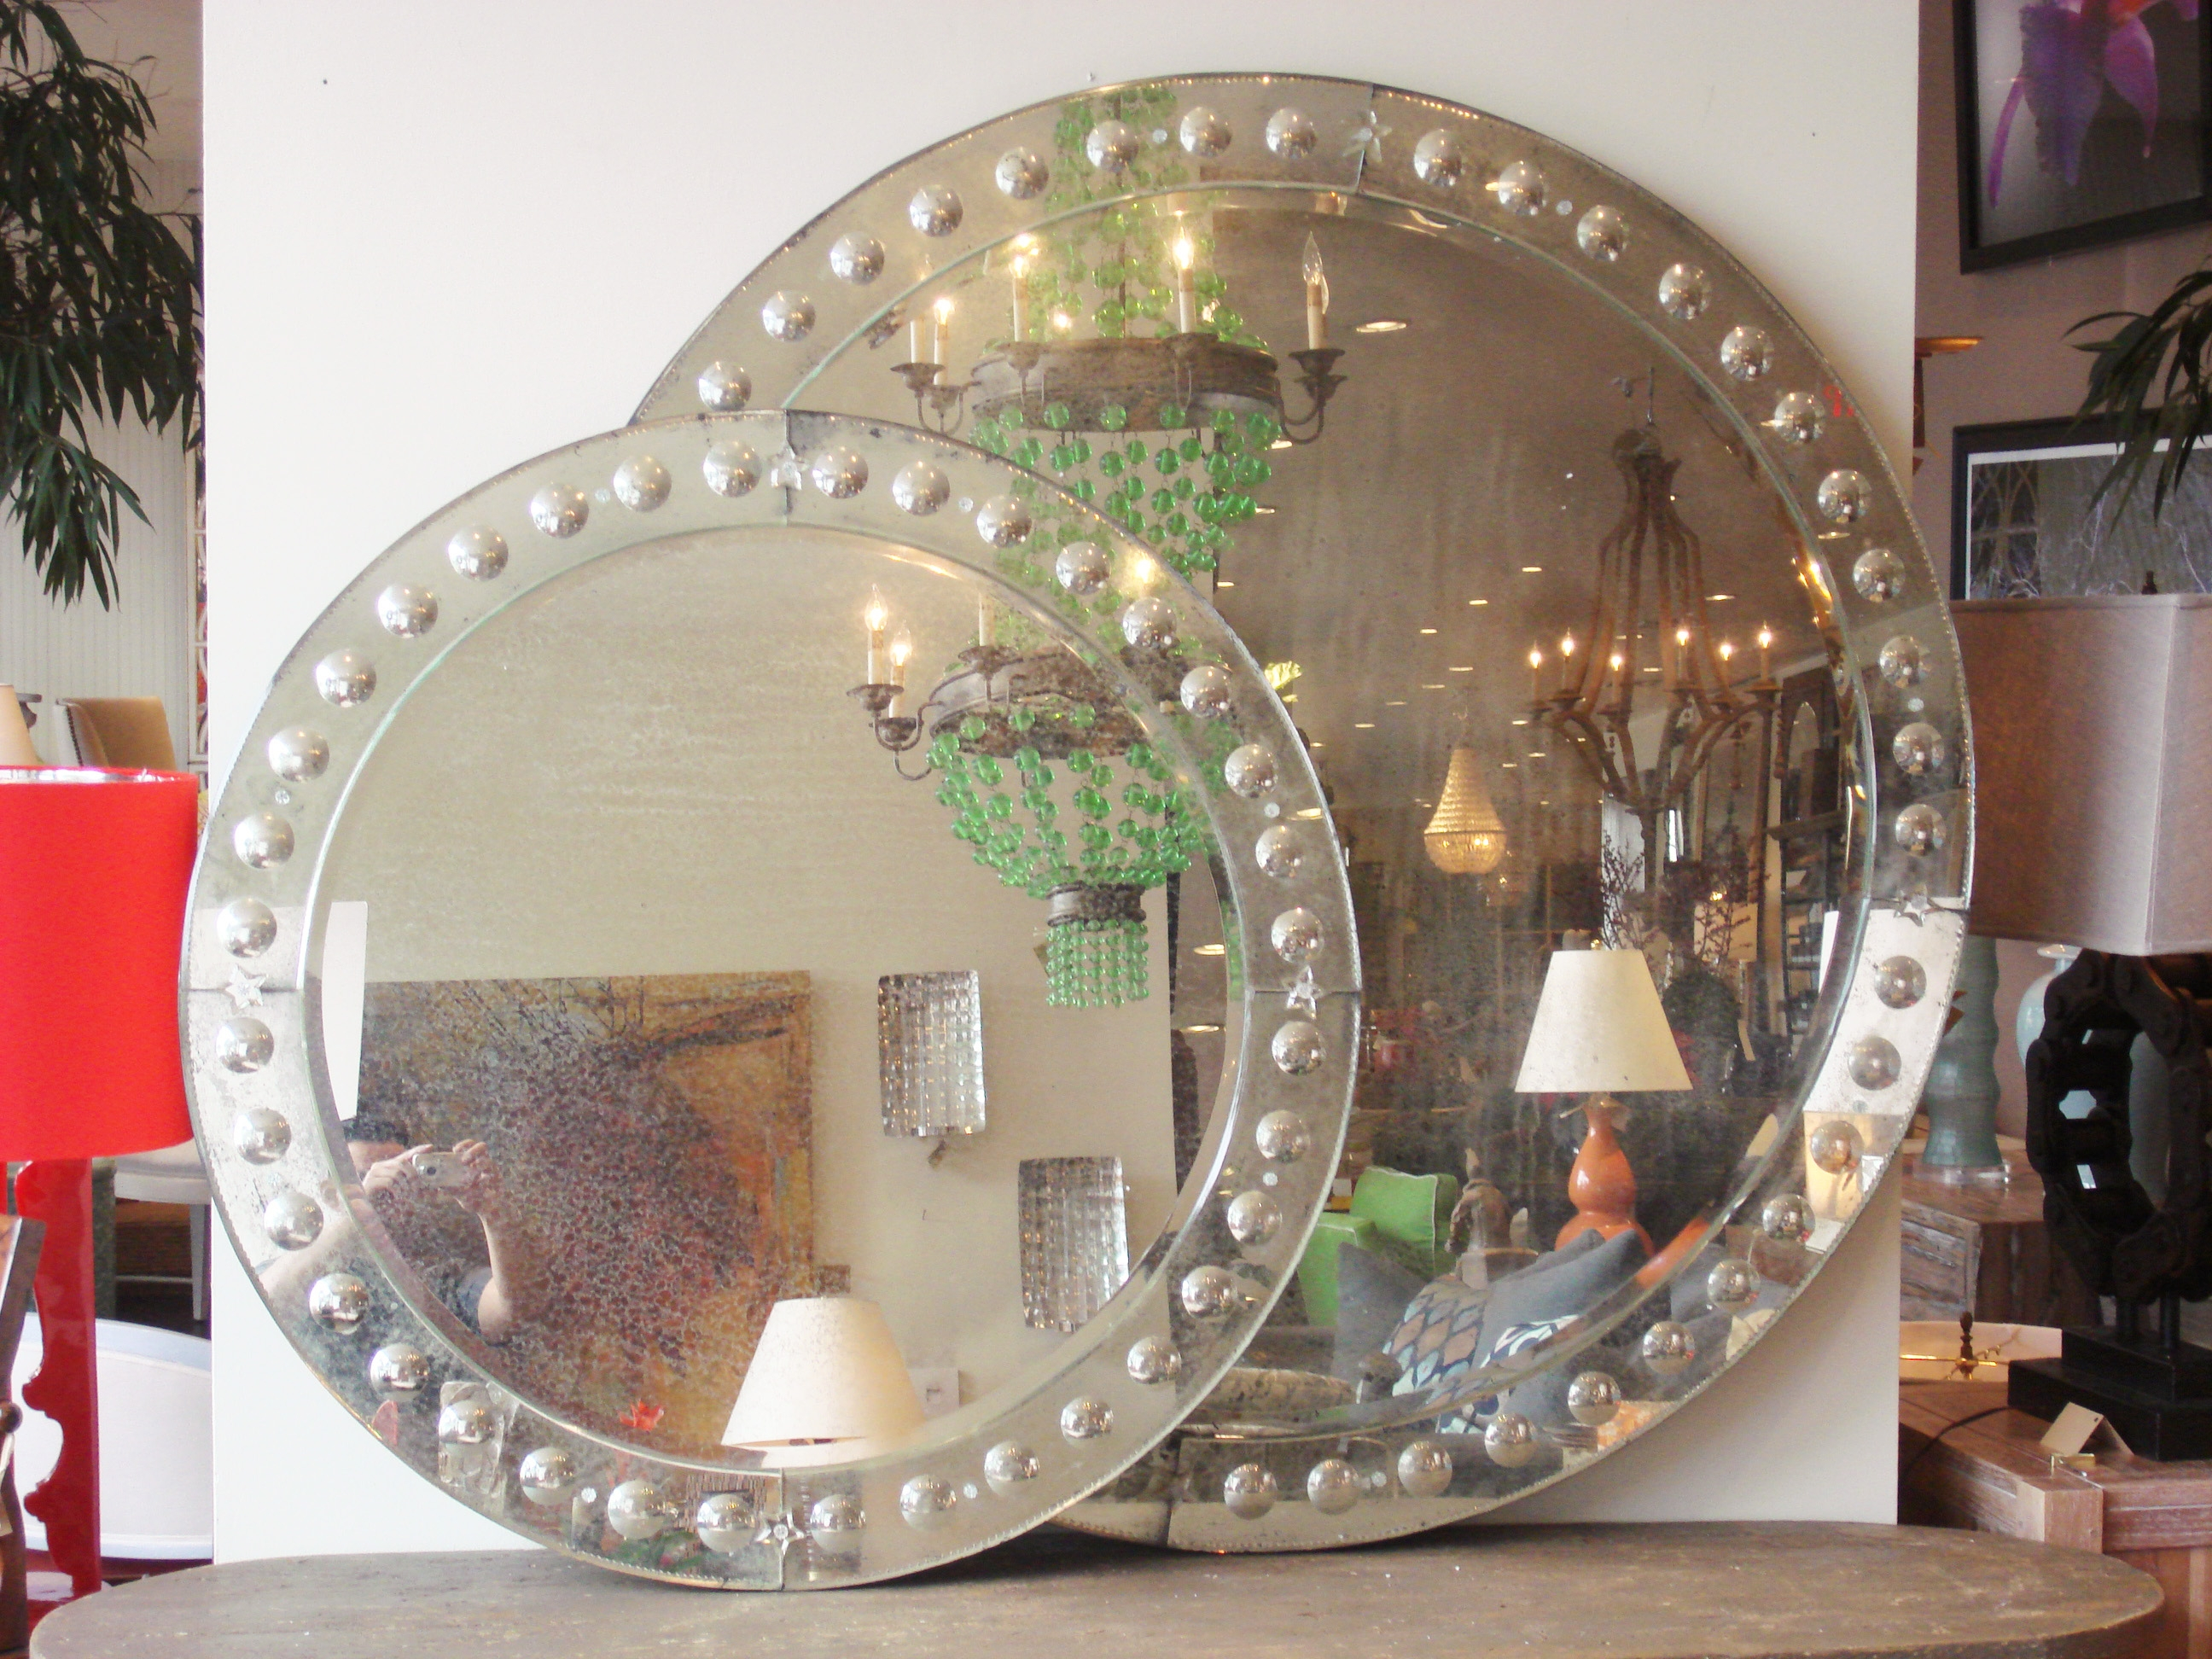 Large Round Antiqued Venetian Mirror Mecox Gardens Inside Mirrors Round Large (Image 10 of 15)